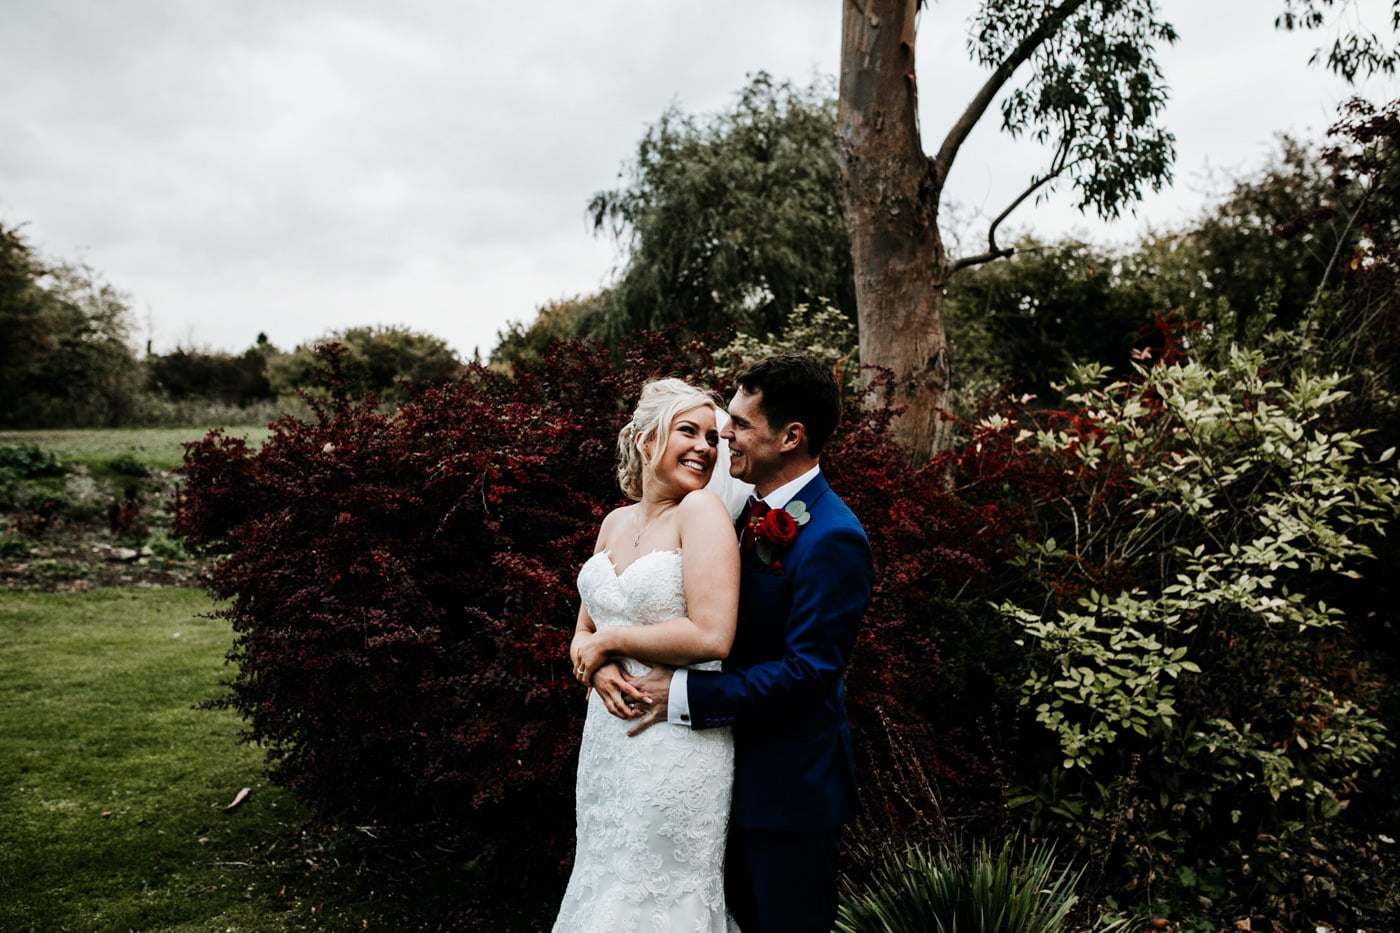 Natalie and Rob, Widbrook Grange, Wiltshire 65